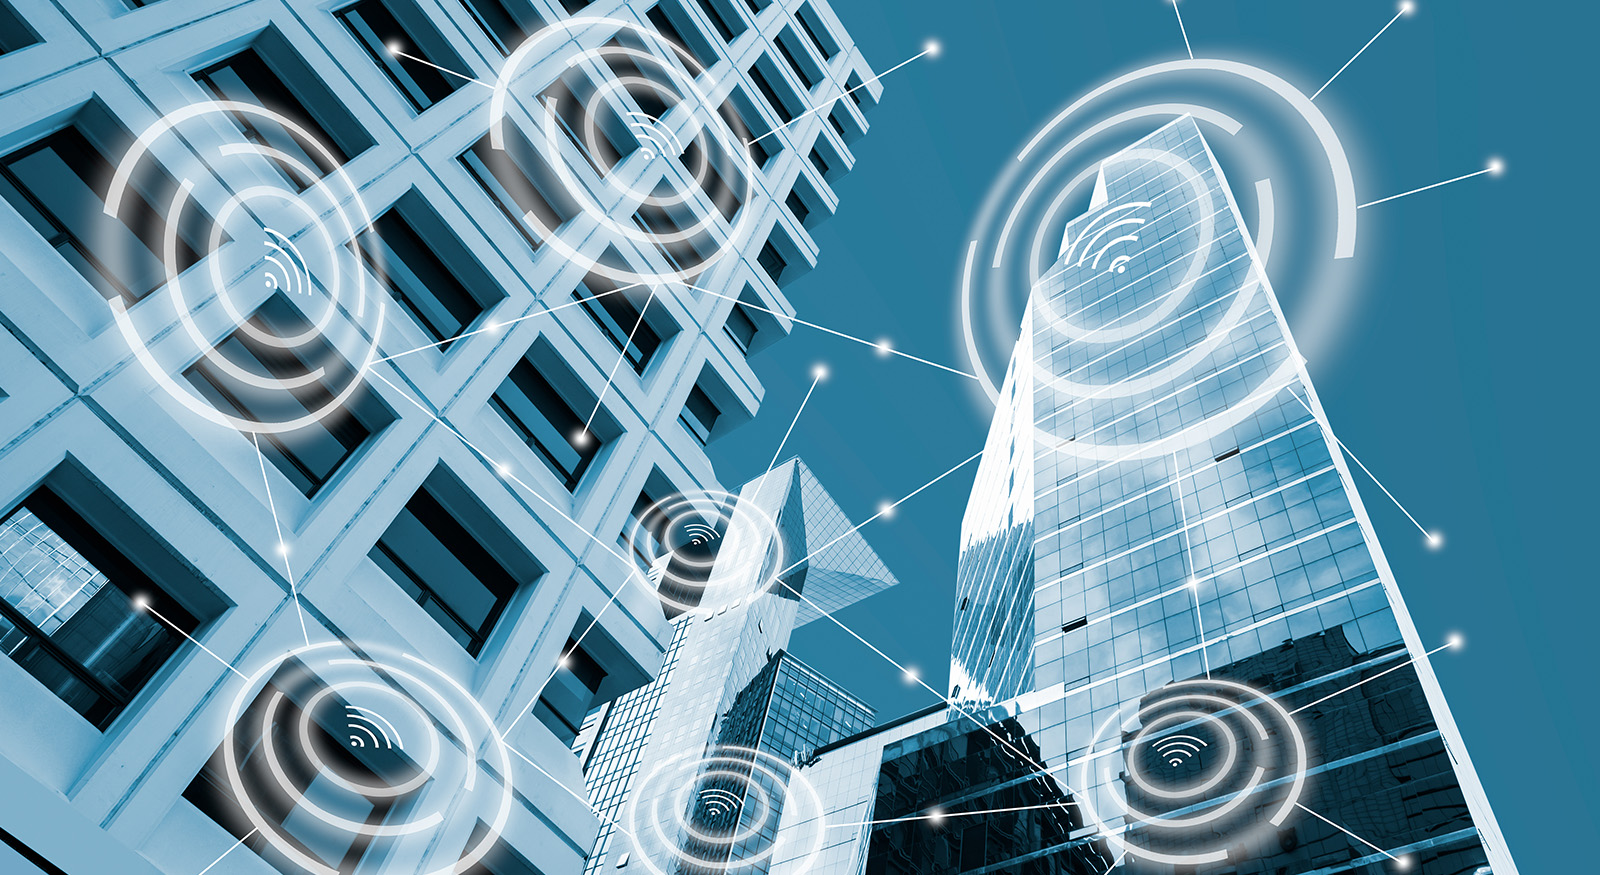 Smart Buildings Market to Eyewitness Massive Growth by 2025 | Siemens, Honeywell, Schneider Electric